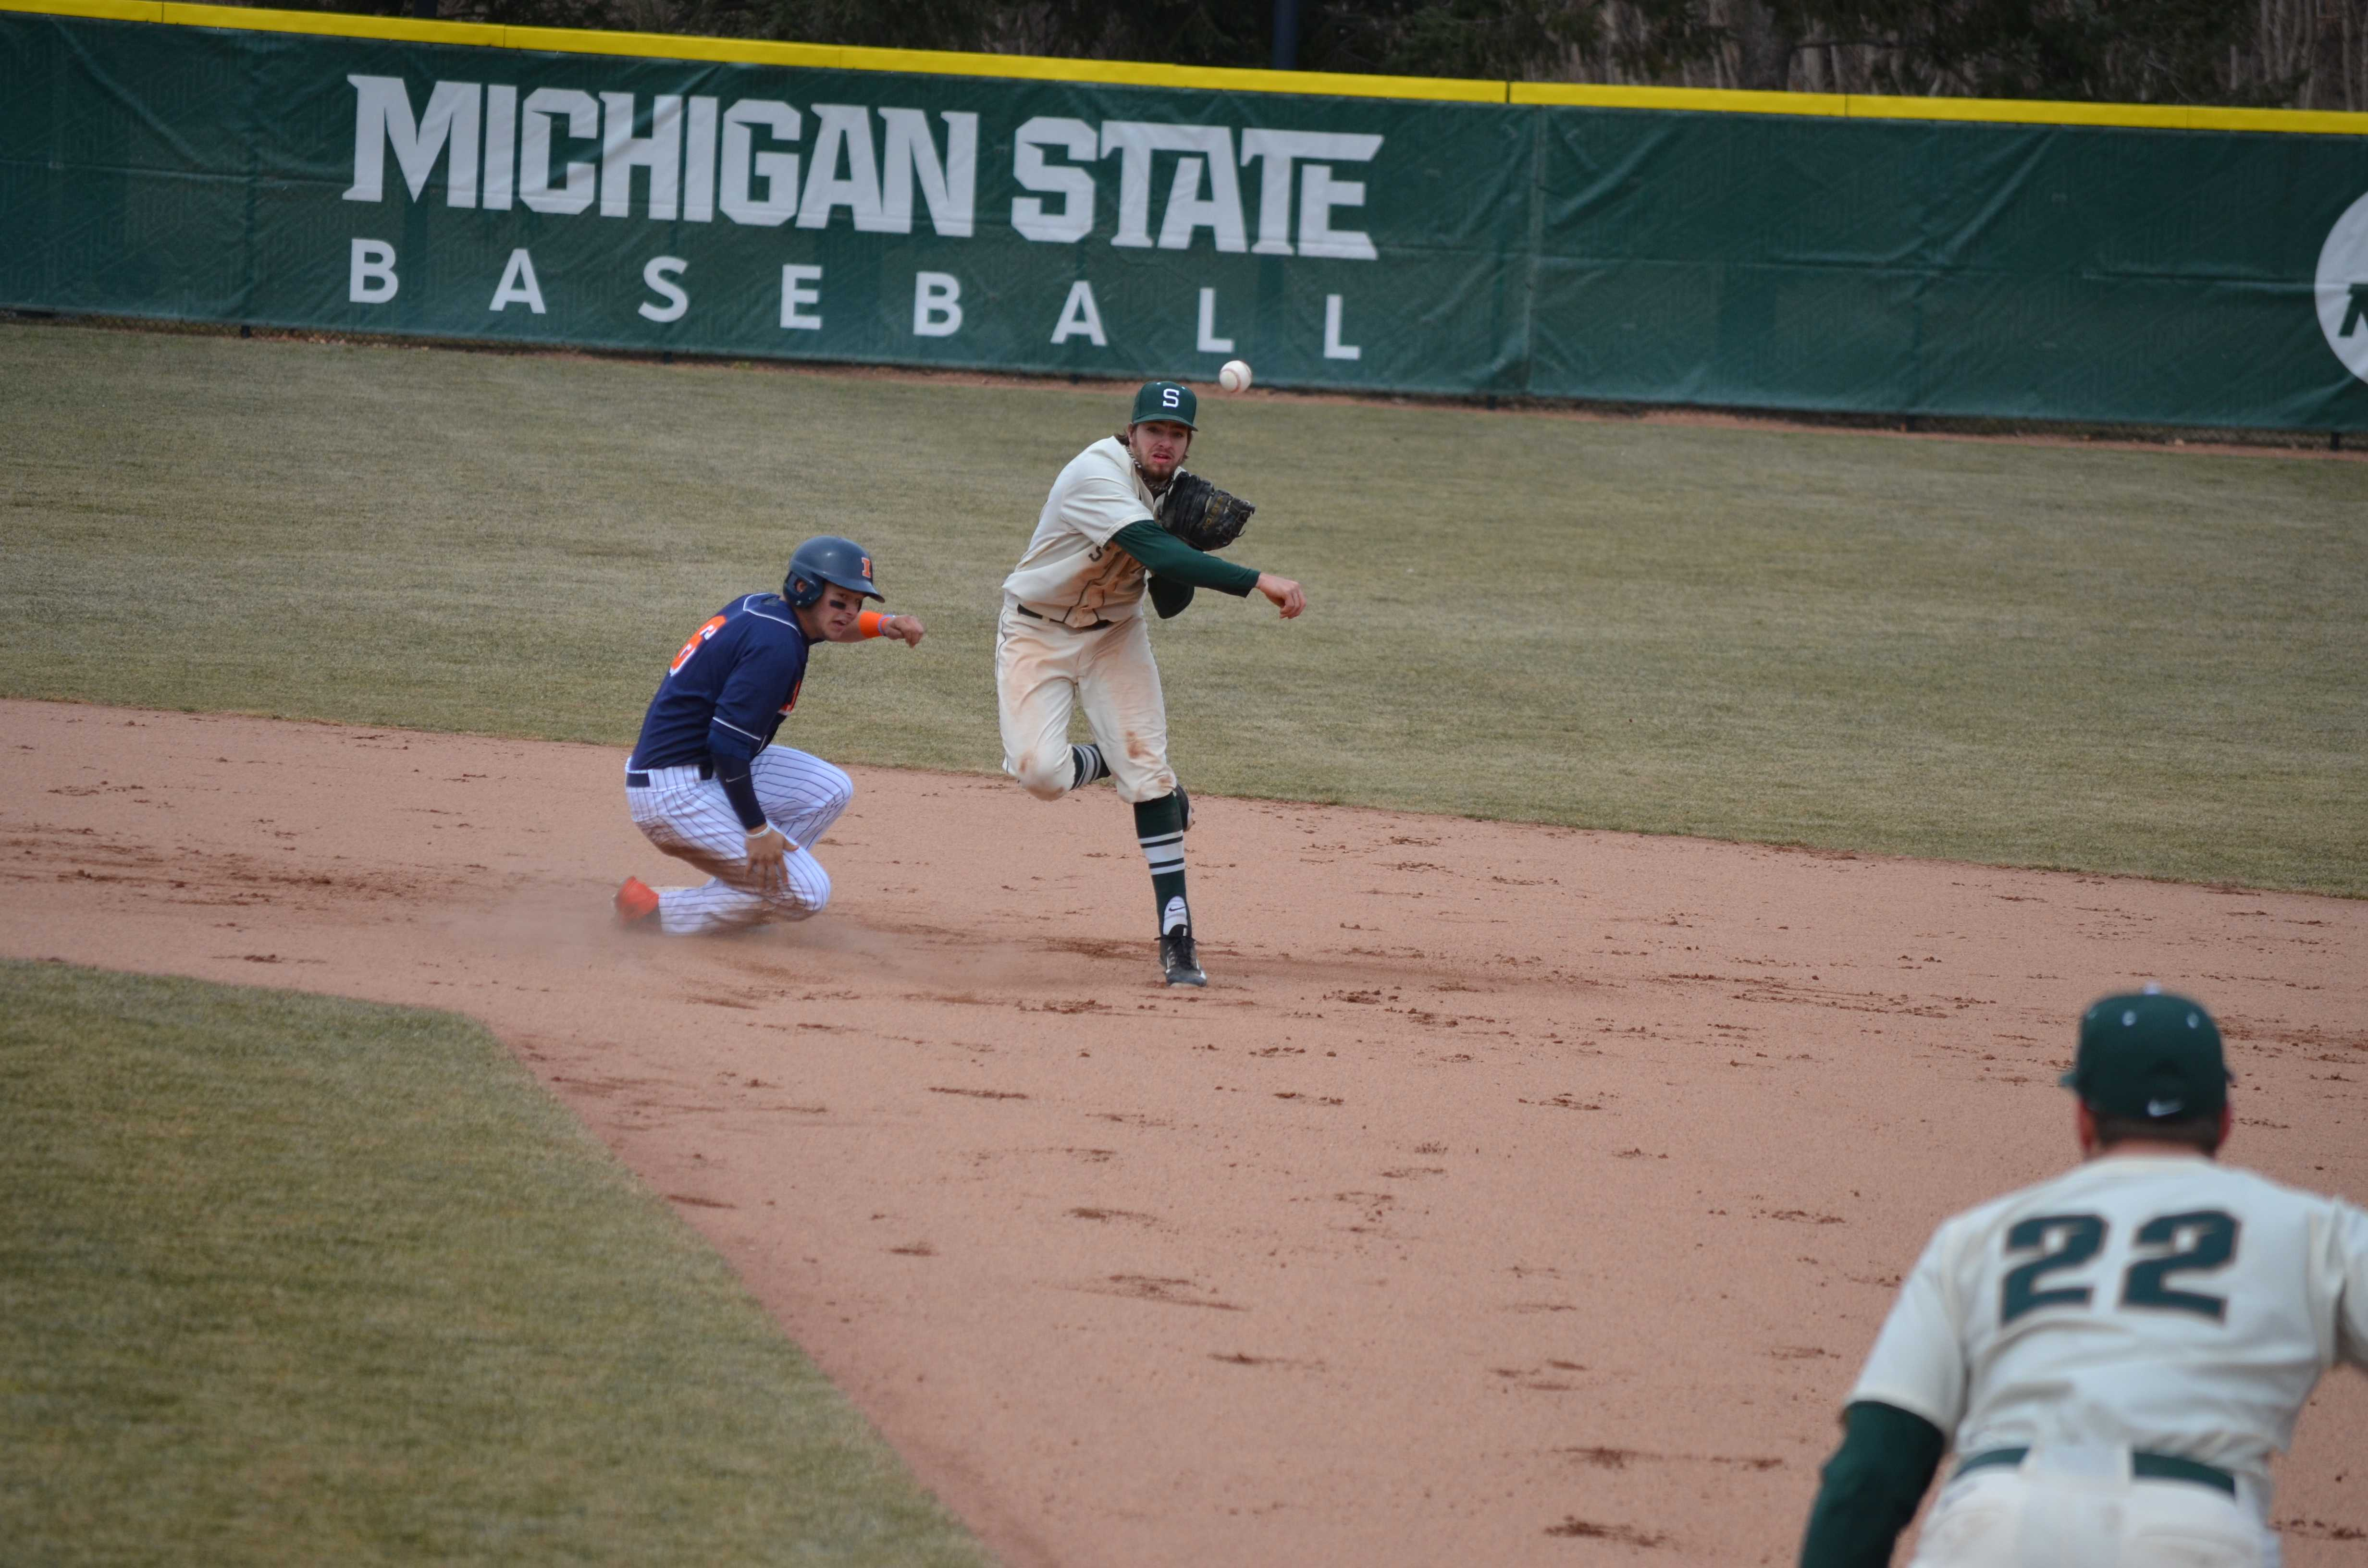 Historic Spartan Baseball Team Comes to East Lansing for Home Opener